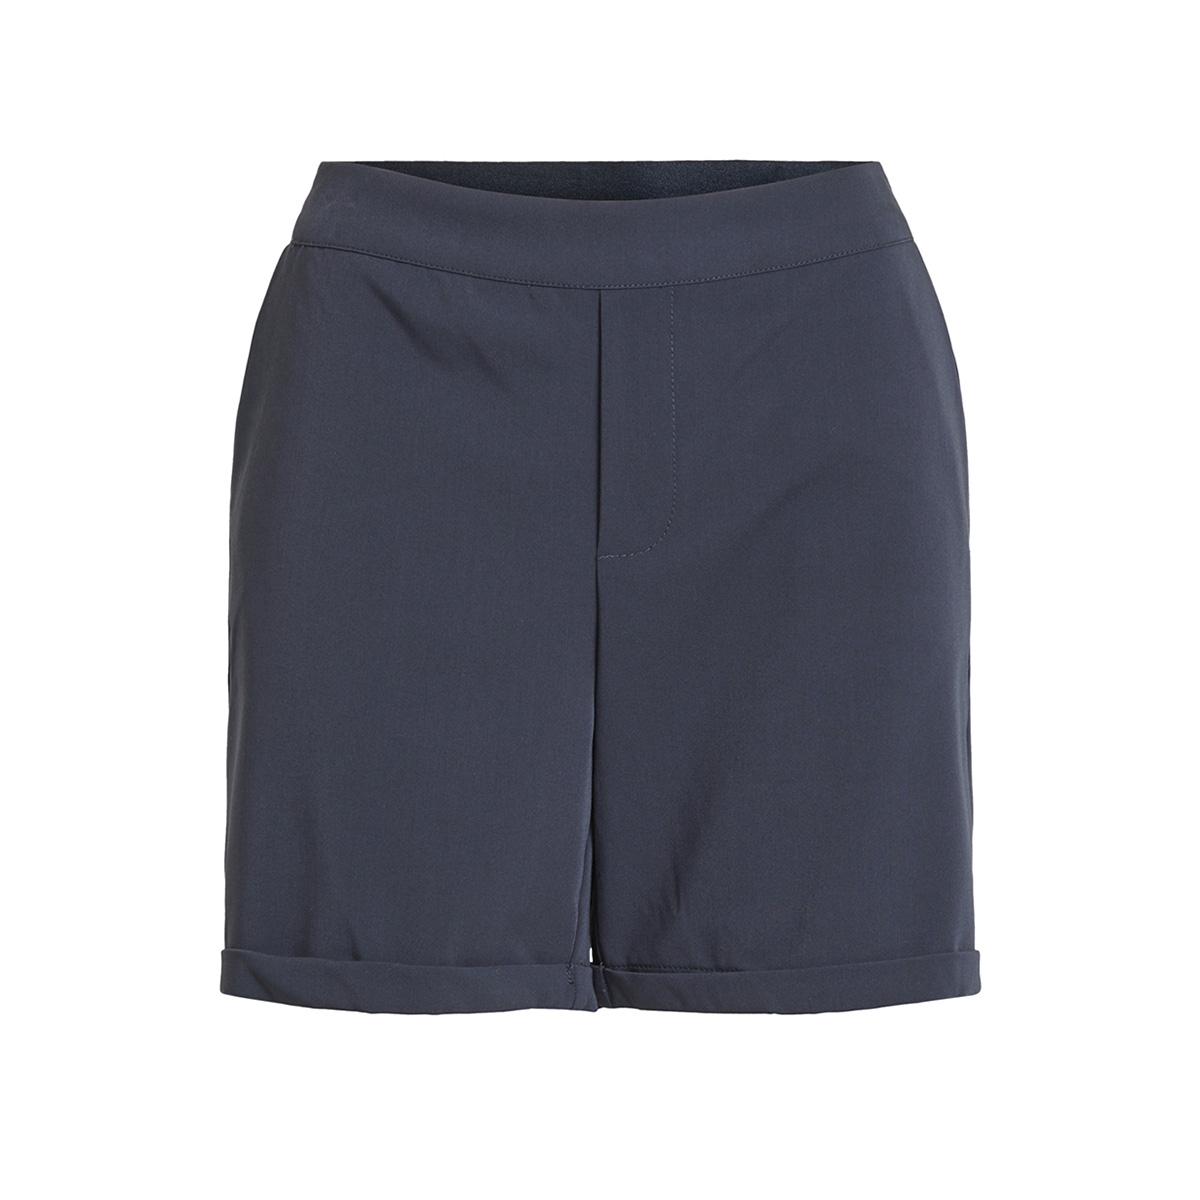 objcecilie shorts noos 23029185 object korte broek sky captain